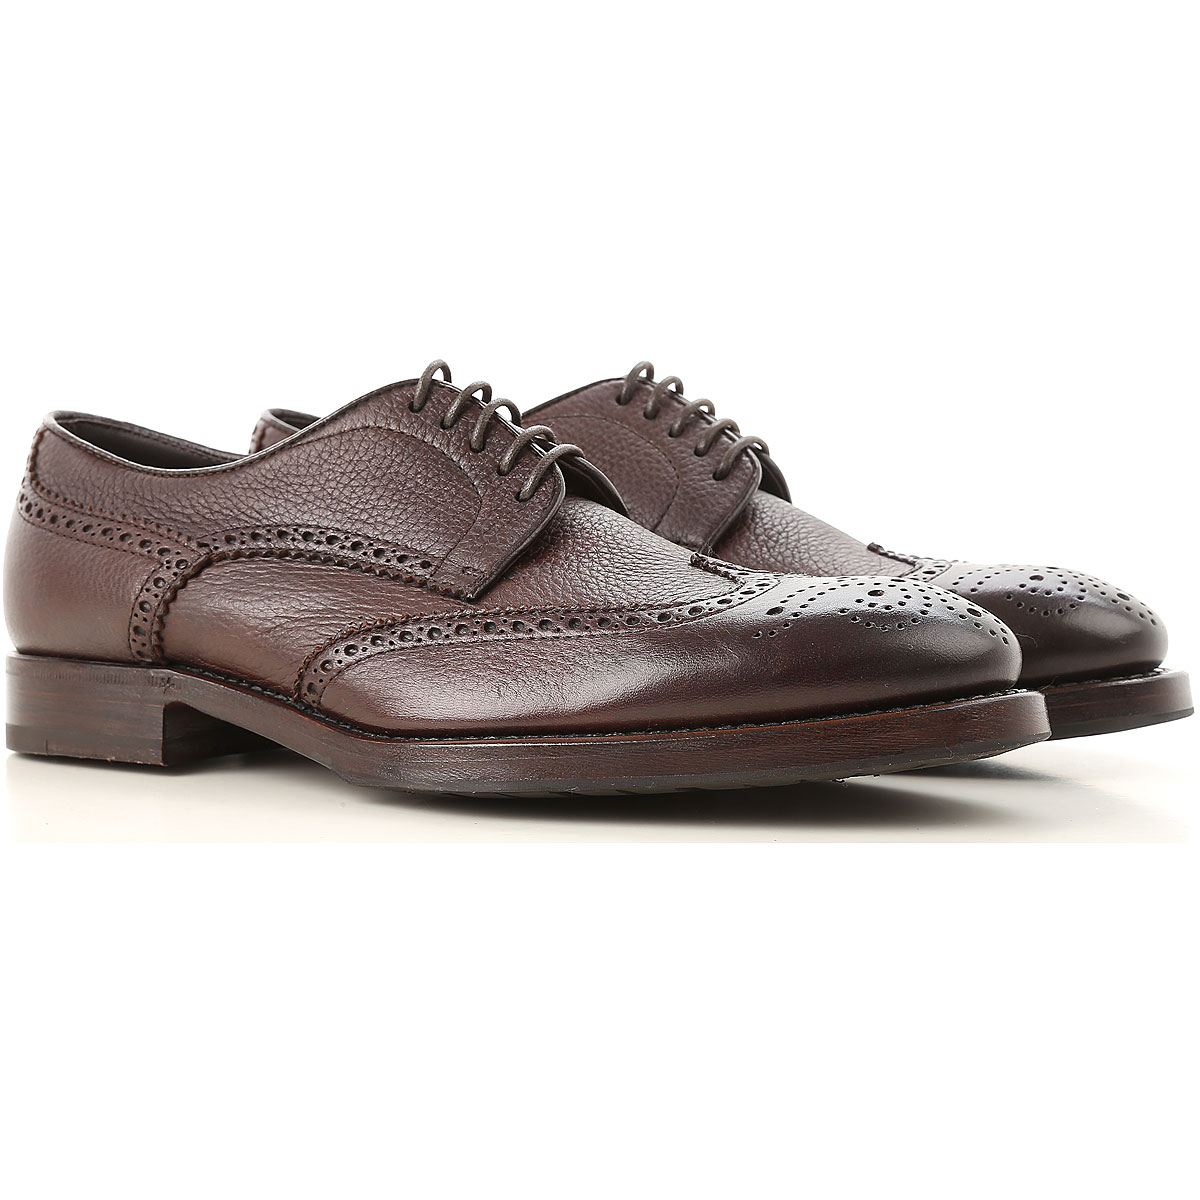 Image of Henderson Lace Up Shoes for Men Oxfords, Derbies and Brogues, Dark Brown, Leather, 2017, 10 10.5 11 11.5 6 7 7.5 8 8.5 9 9.5